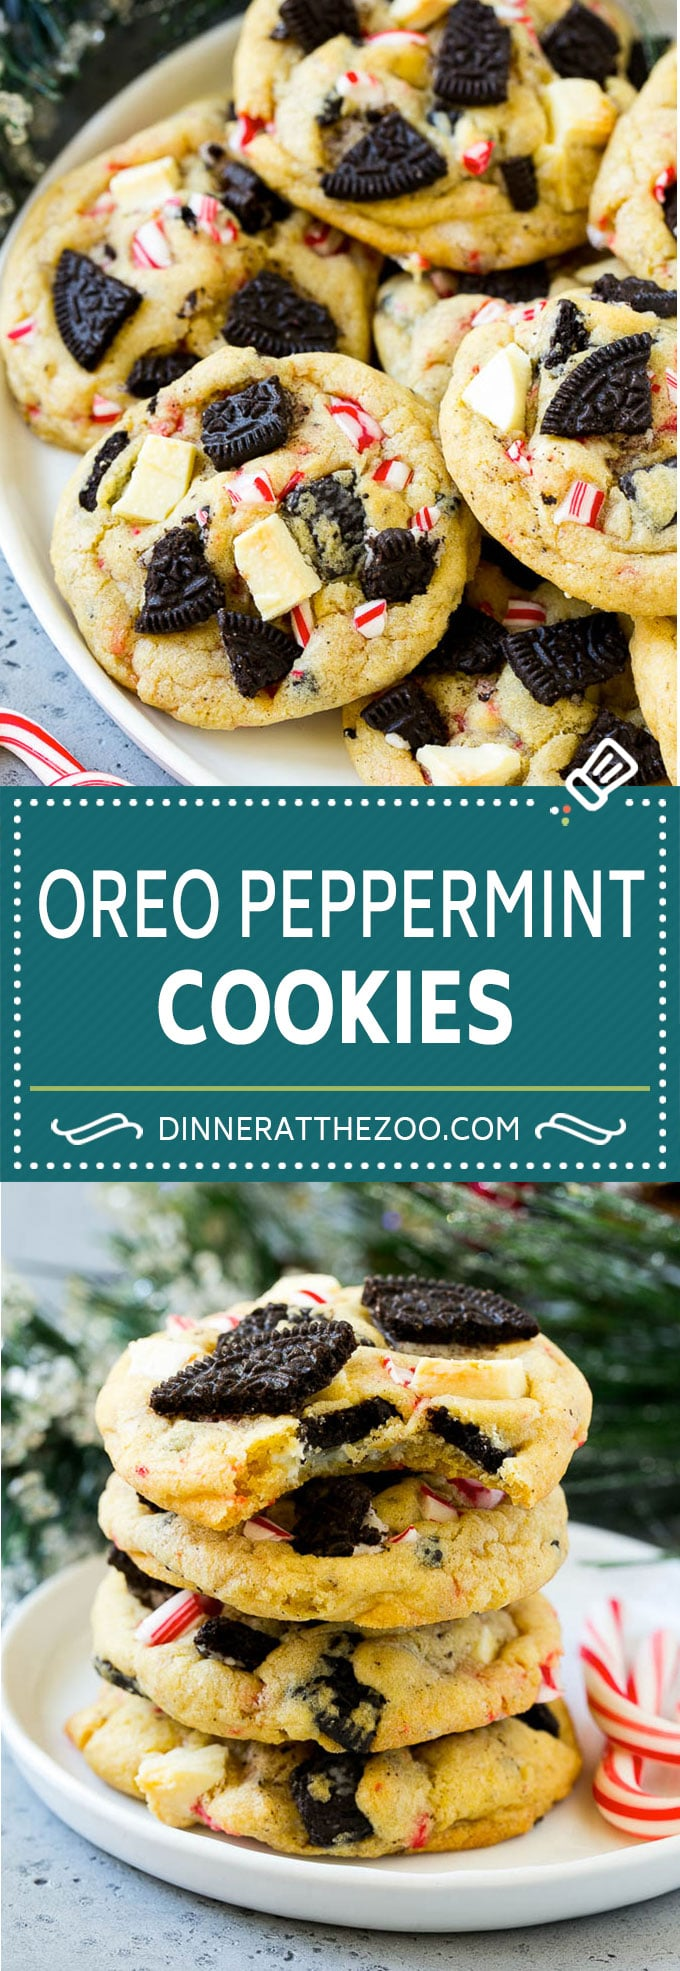 Oreo Peppermint Cookies Recipe | Candy Cane Cookies | Oreo Cookies #oreo #peppermint #cookies #baking #Christmas #sweets #dinneratthezoo